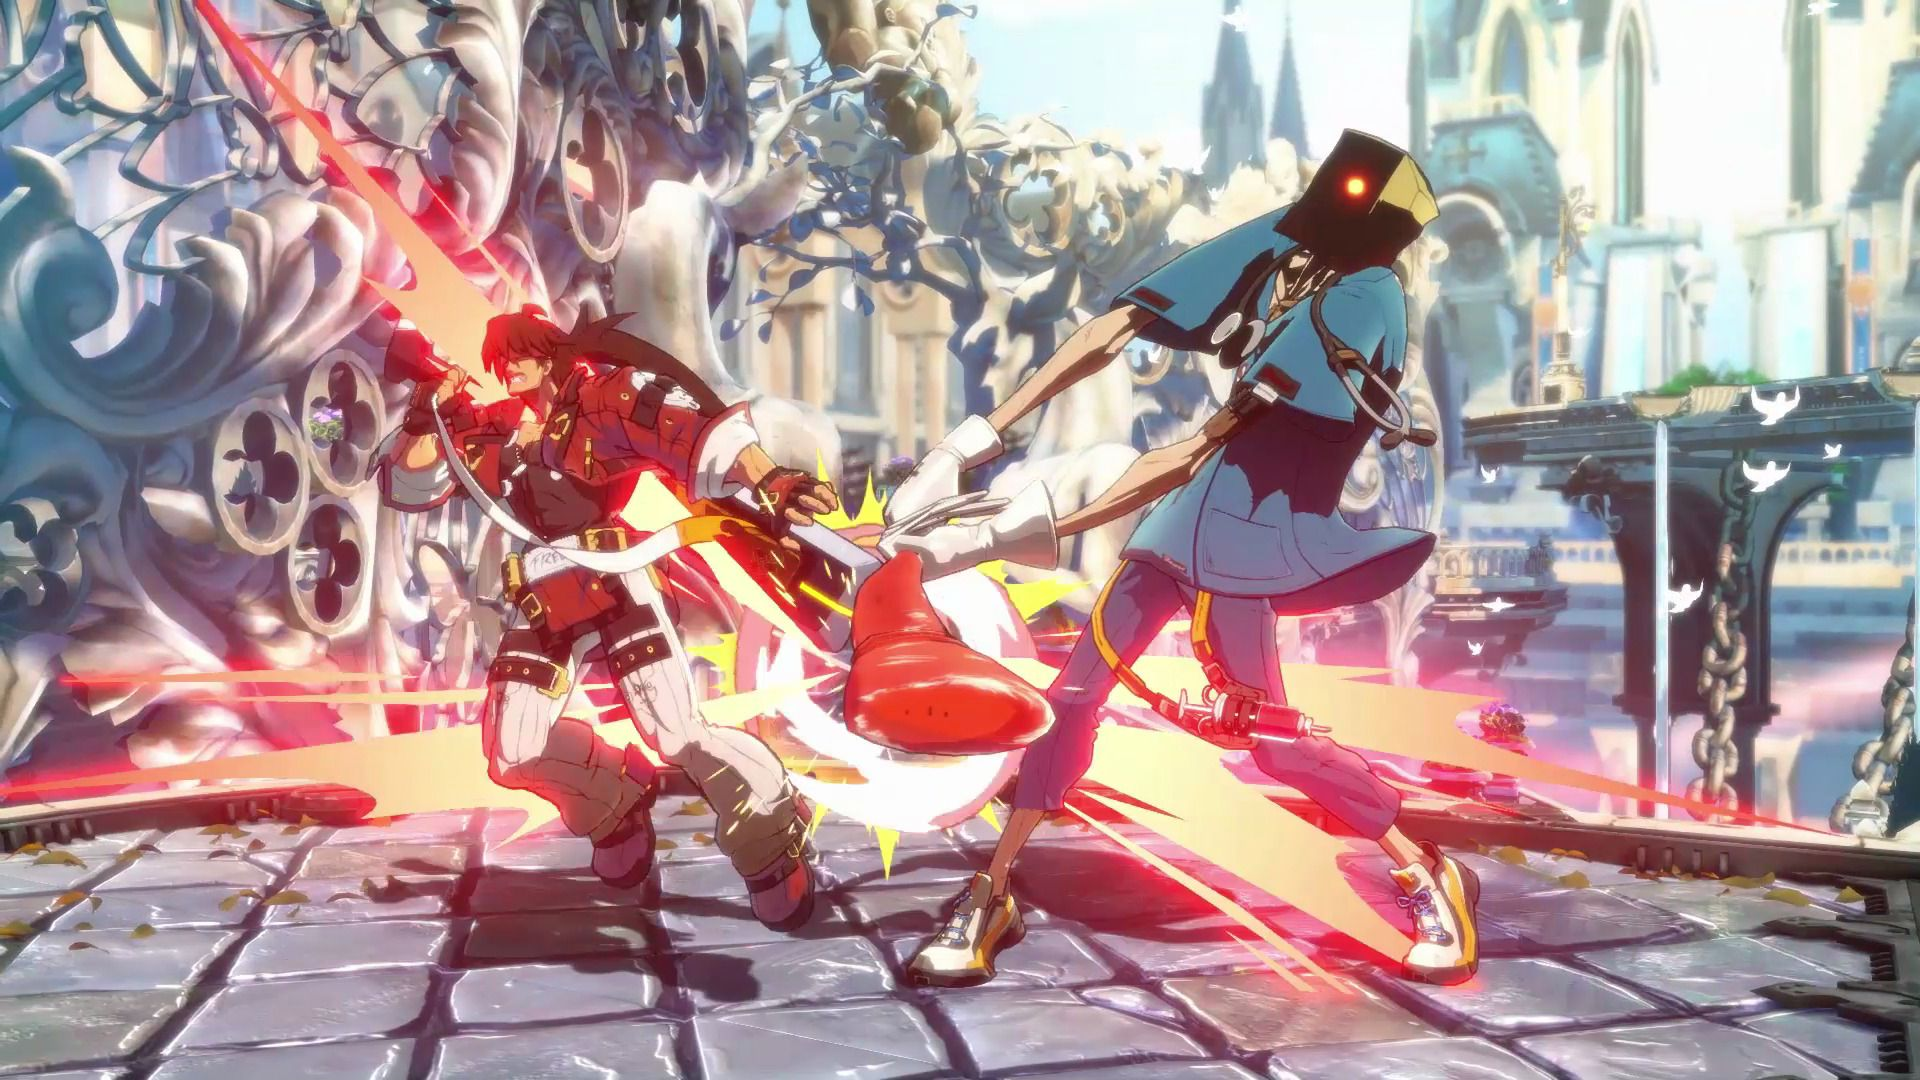 Anime Stye Game Guilty Gear Strive Pushed Back 2 Months